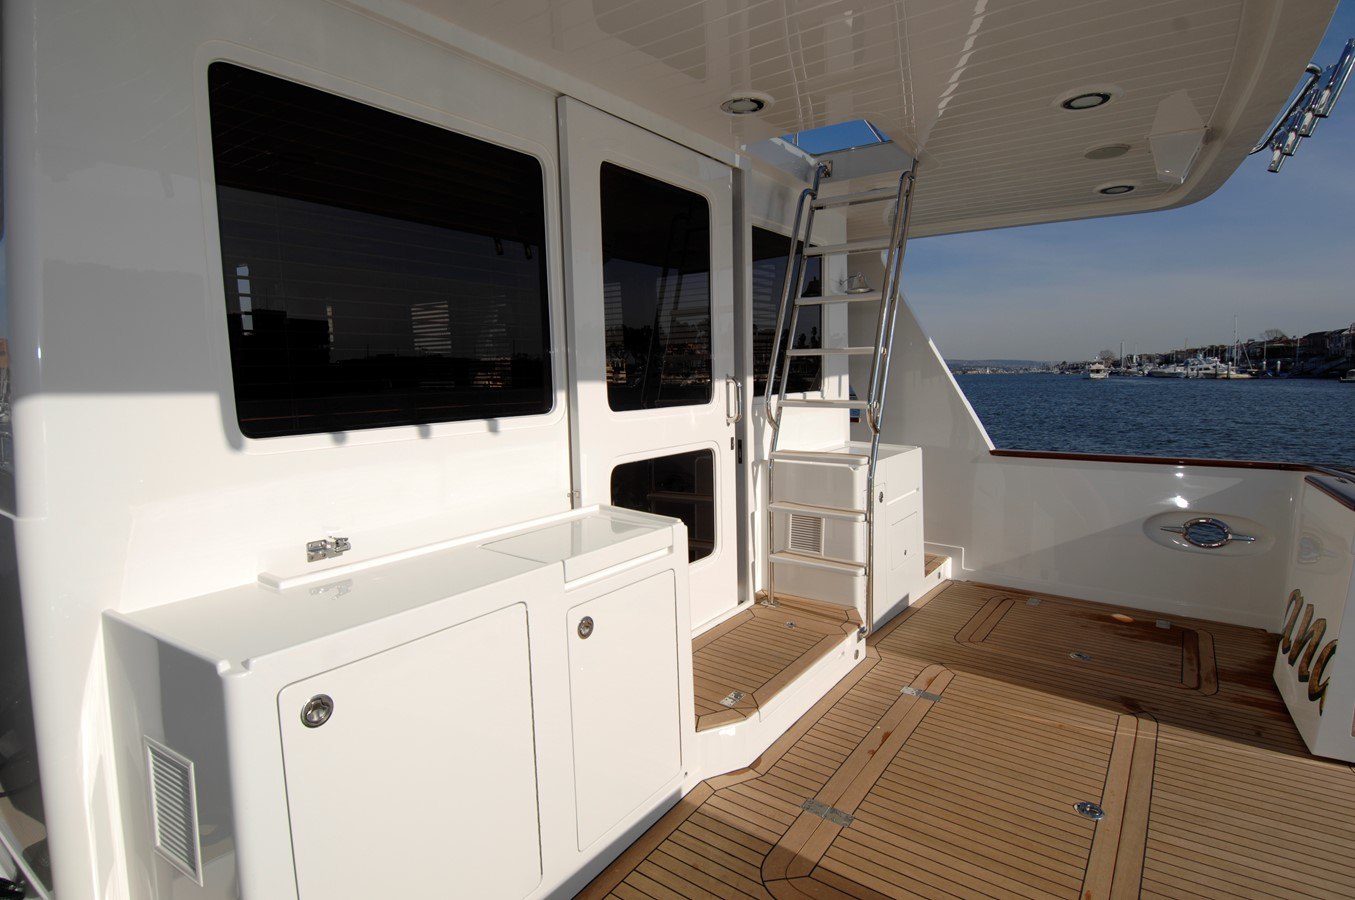 2020 OFFSHORE YACHTS Pilothouse Voyager Motor Yacht 1961798